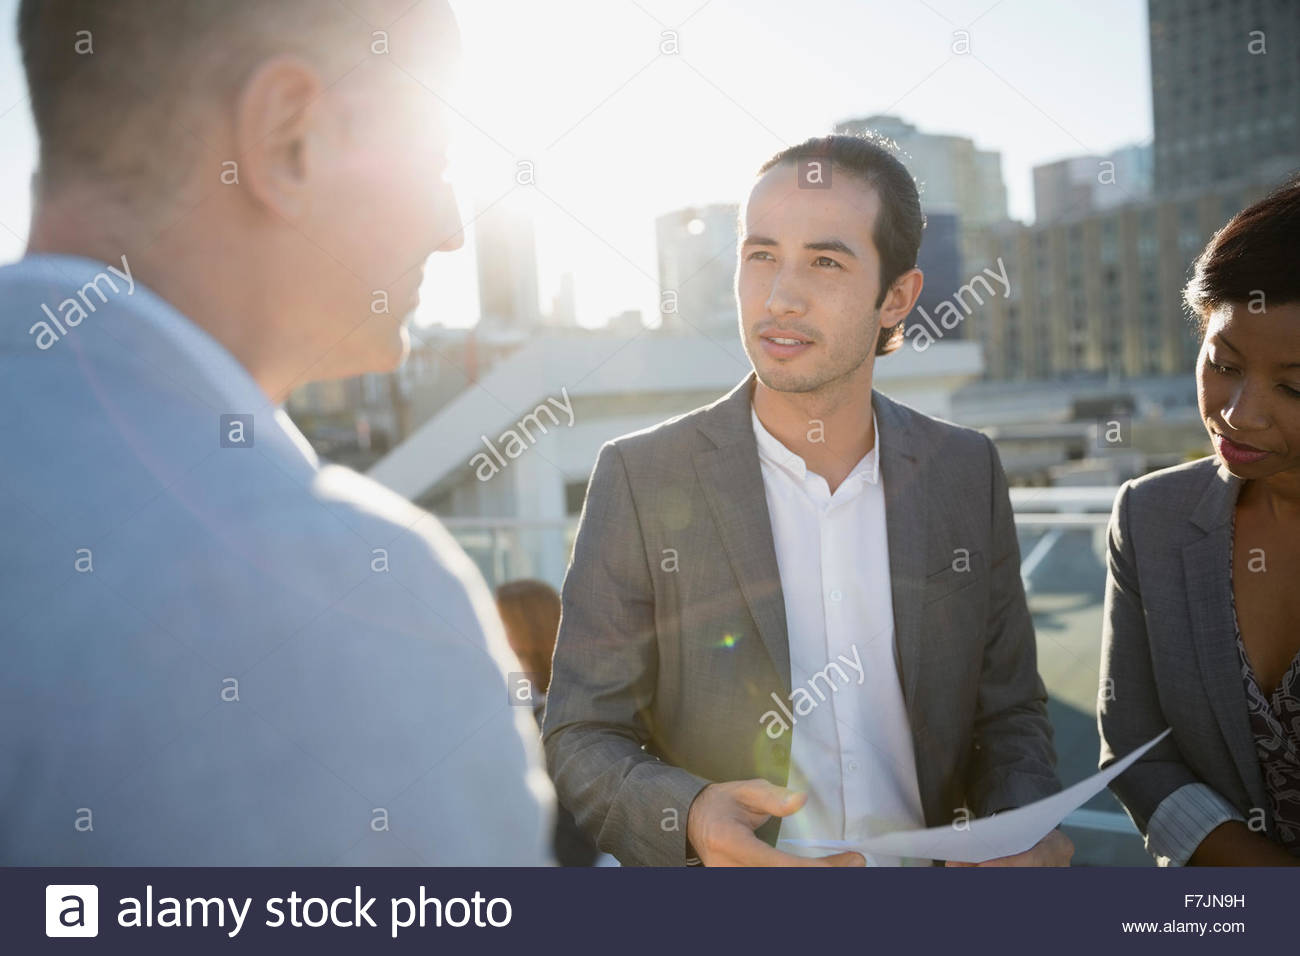 Business people discussing paperwork on sunny urban rooftop - Stock Image